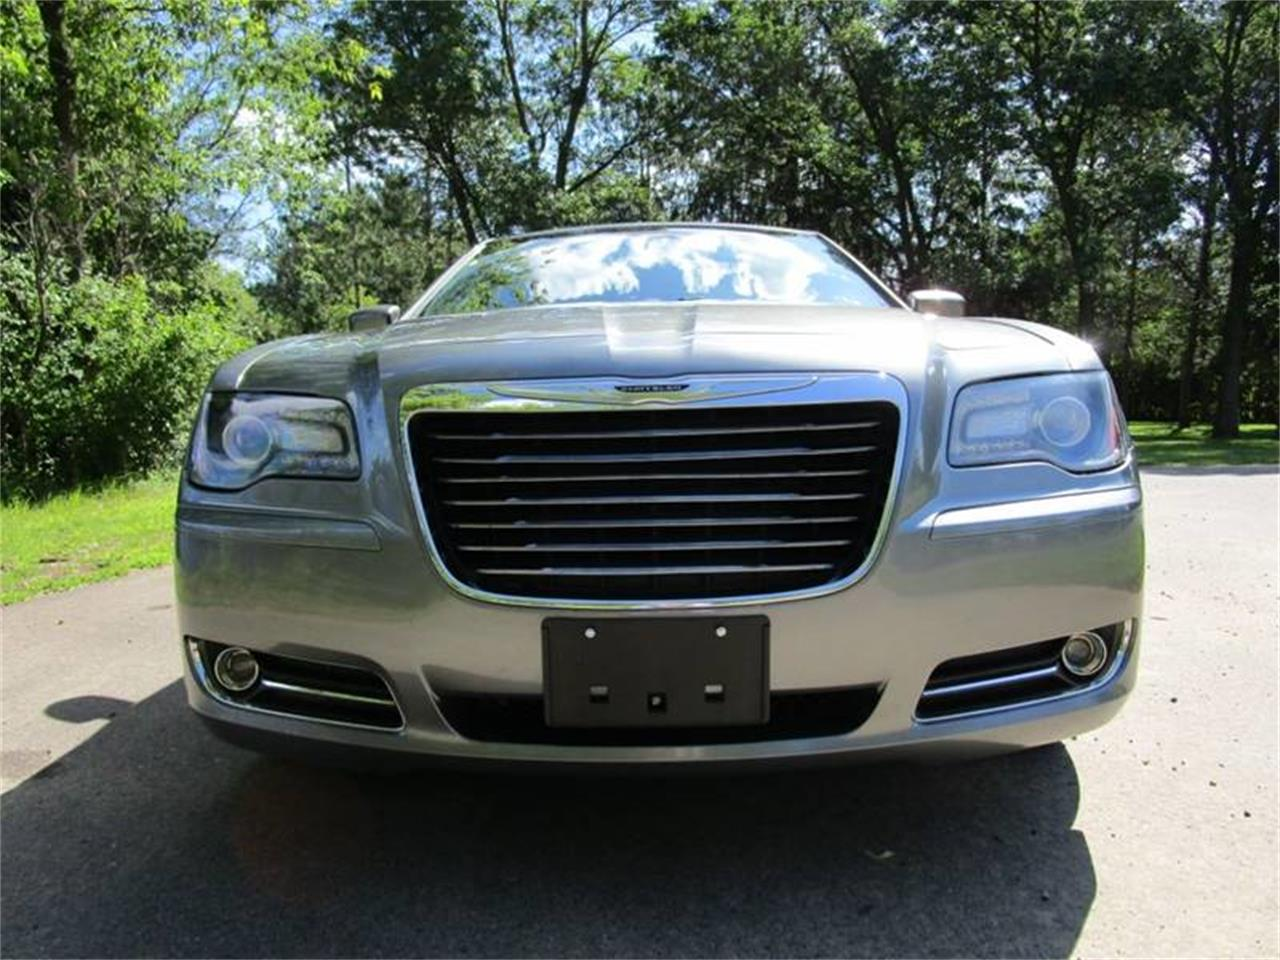 2012 Chrysler 300 for sale in Stanley, WI – photo 6